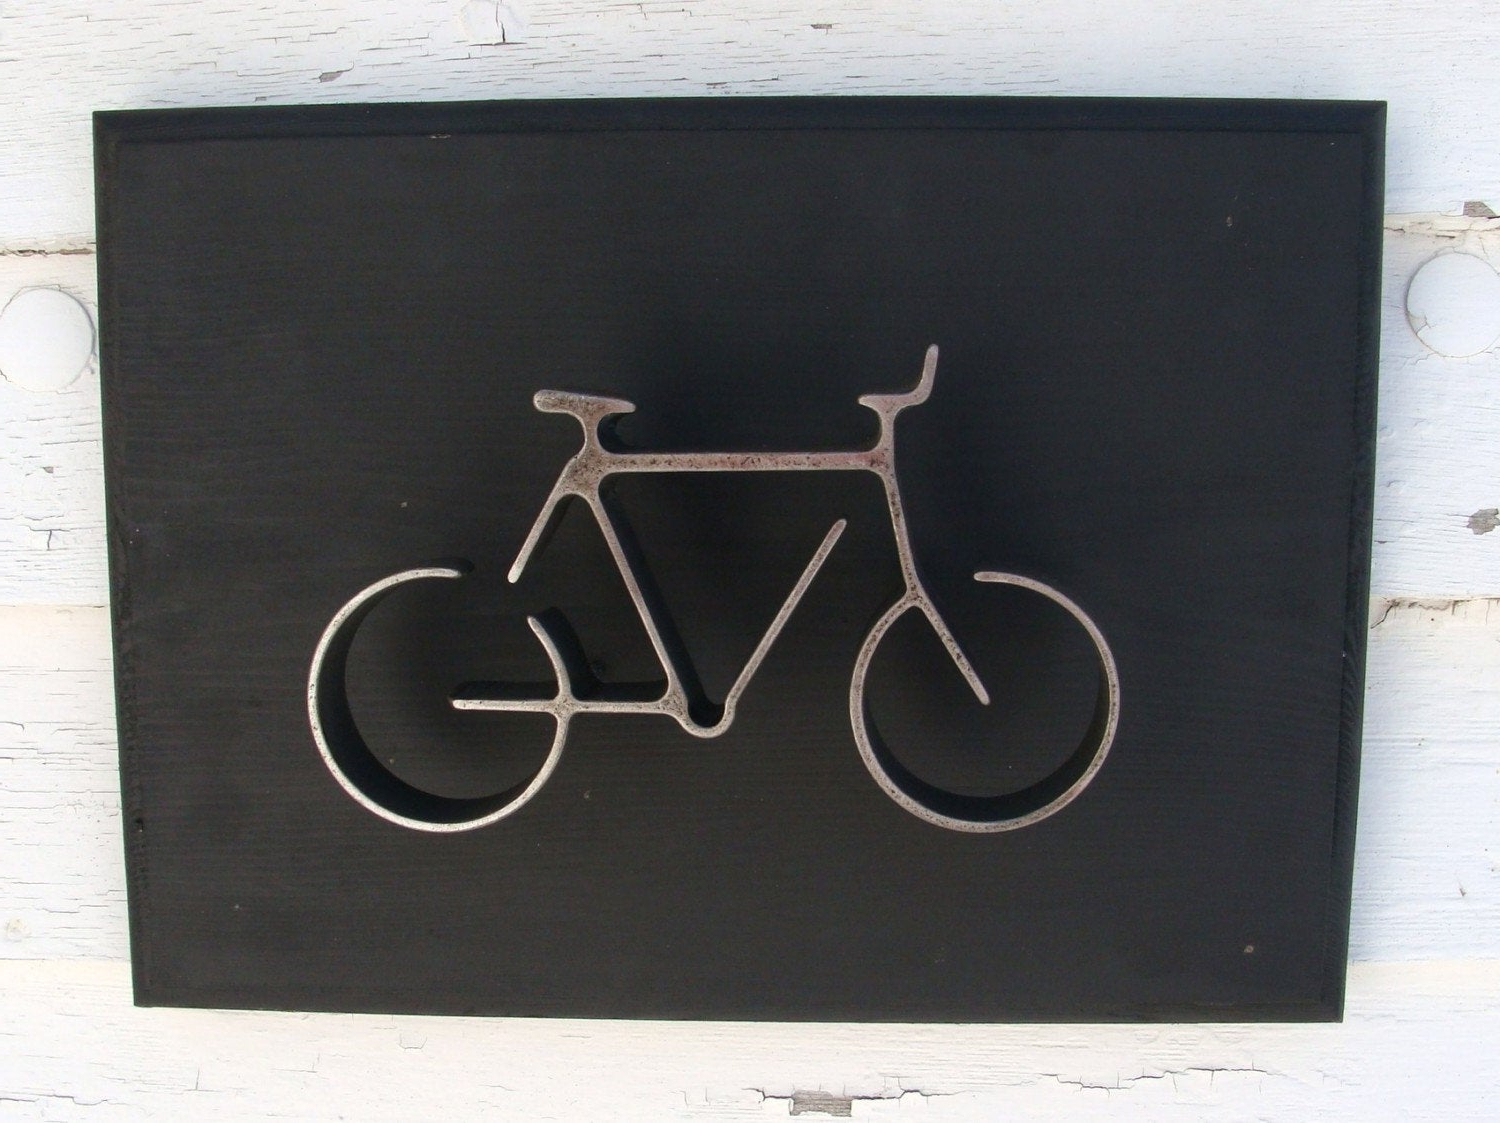 Metal Bicycle Wall Decor For Popular Metal Bicycle Wall Decor Bike Wall Art Home Decor Bicycle (View 8 of 20)